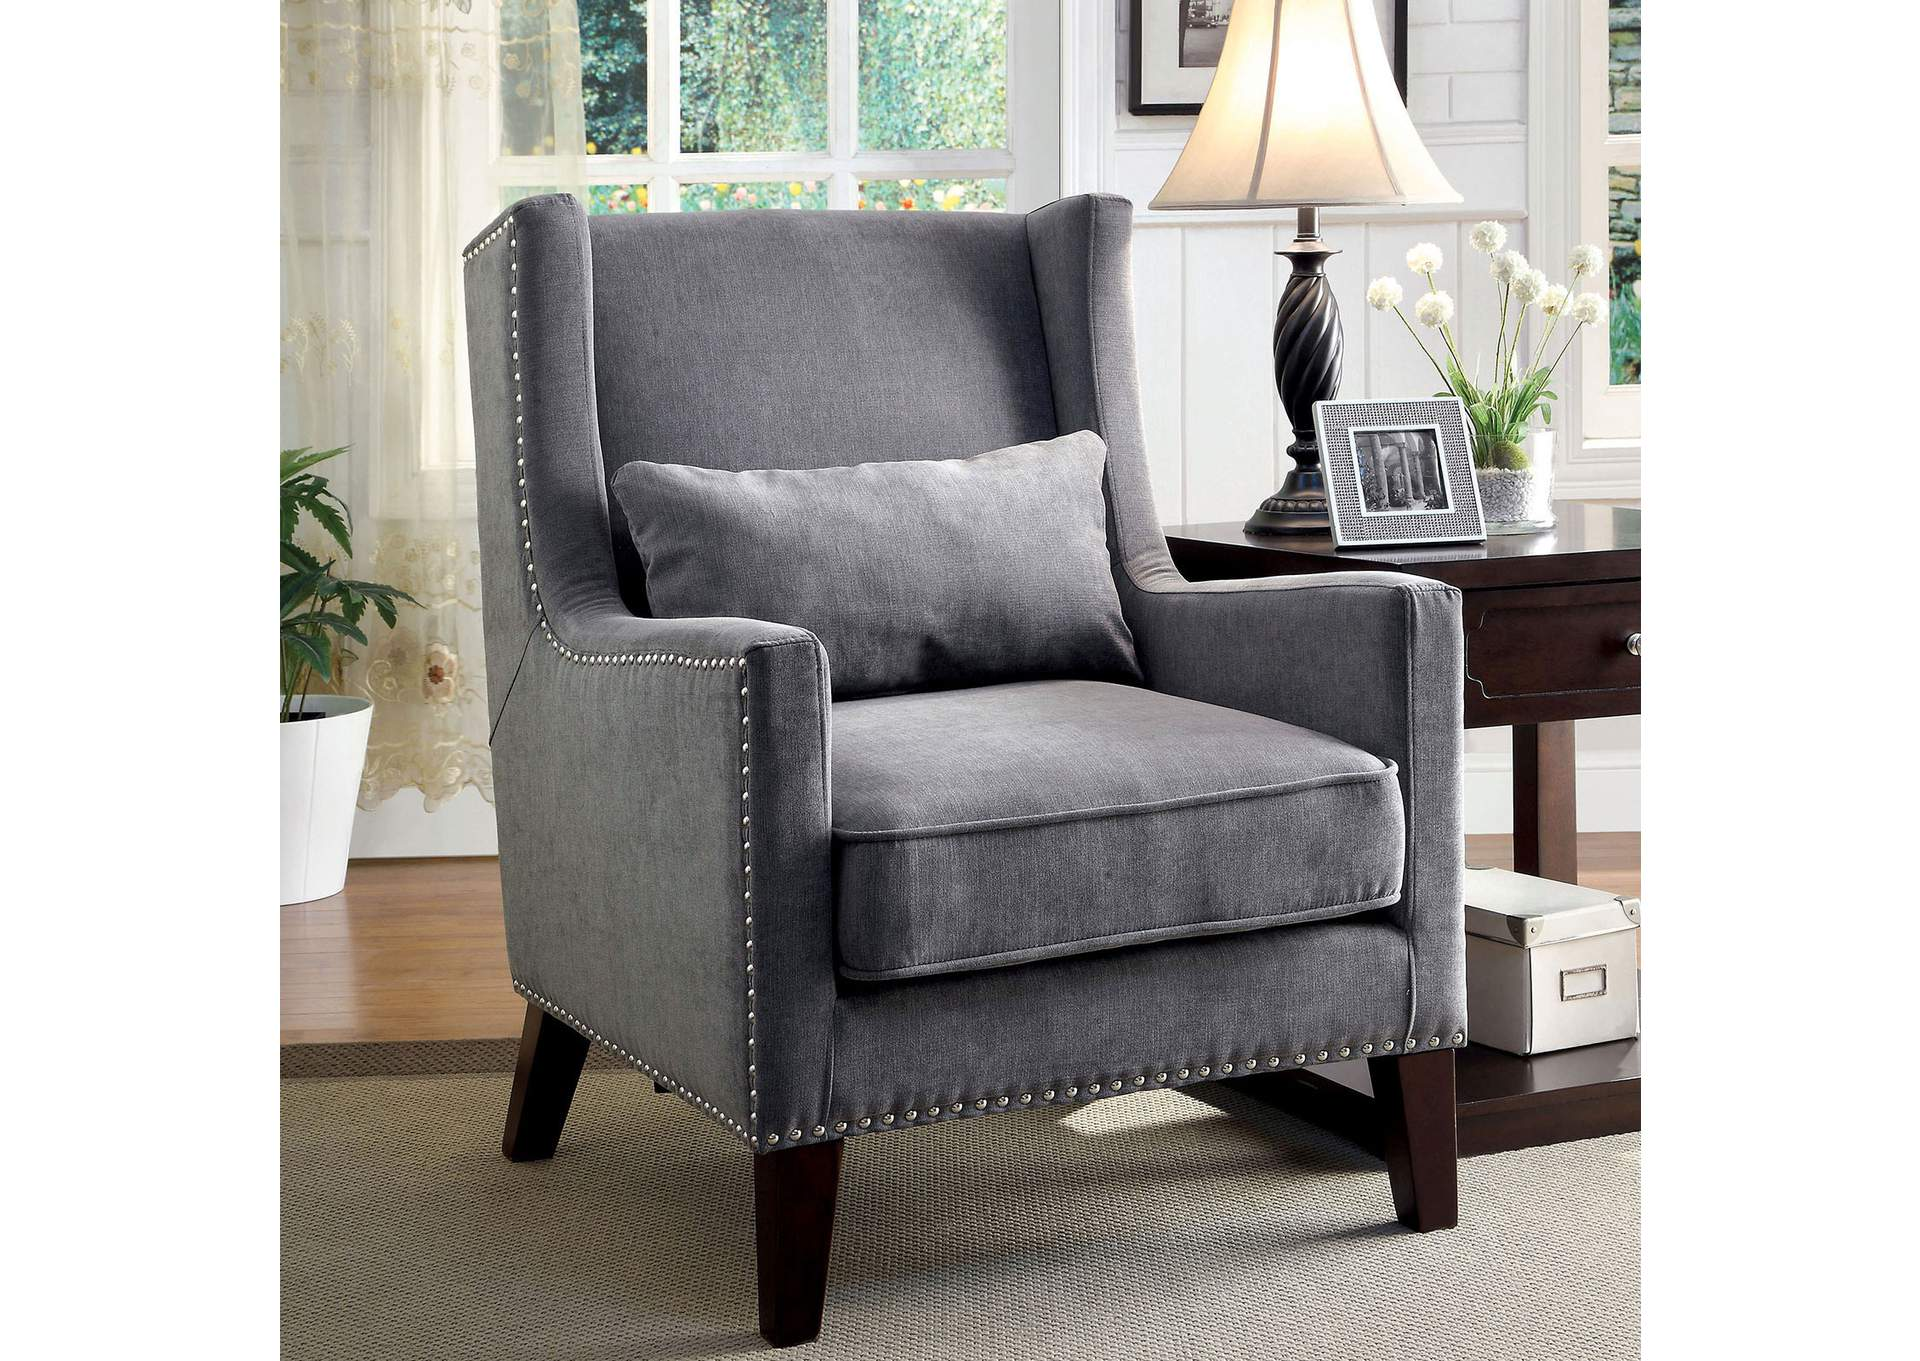 Fabulous 252983 Tomar Gray Wingback Accent Chair W Nailhead Trim Pabps2019 Chair Design Images Pabps2019Com